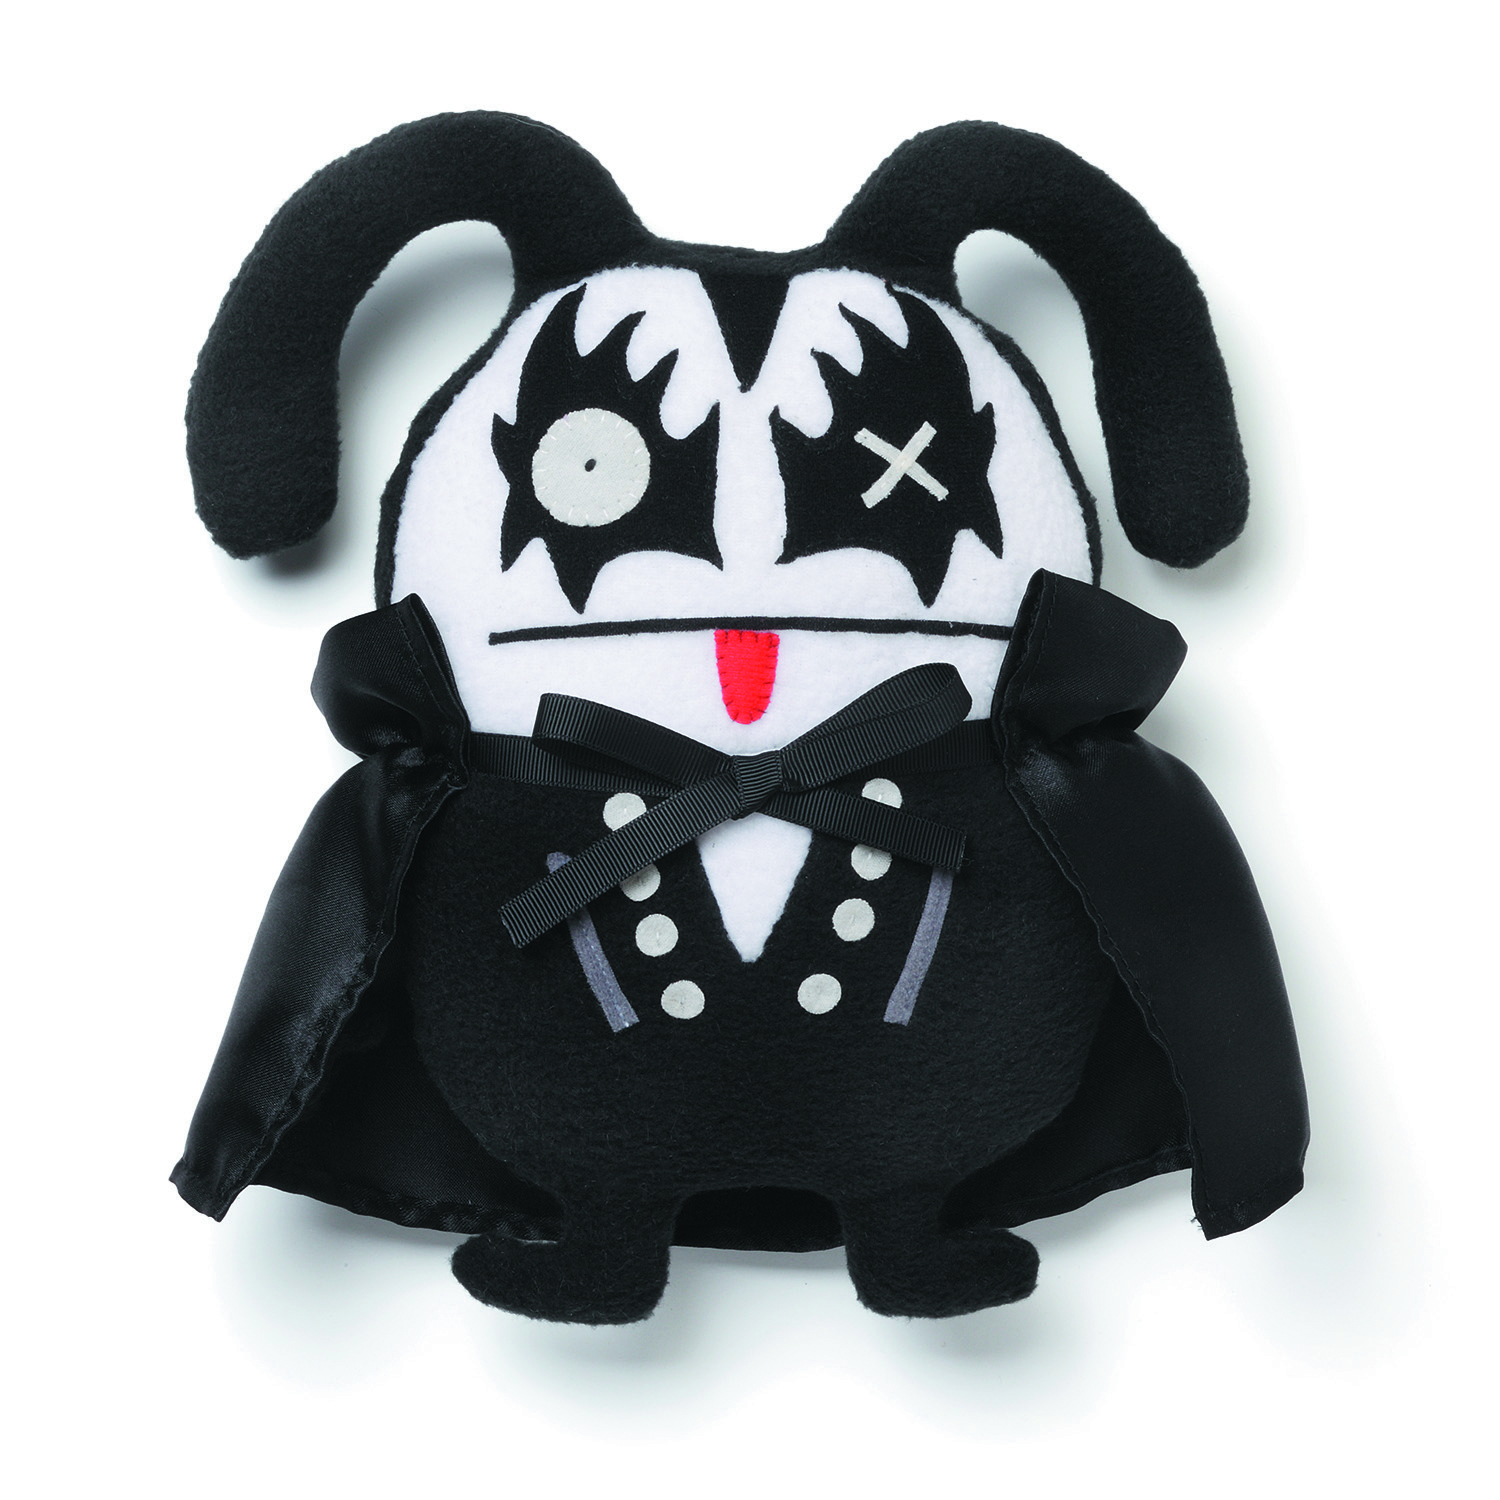 UGLYDOLL KISS OX DEMON 11-IN PLUSH